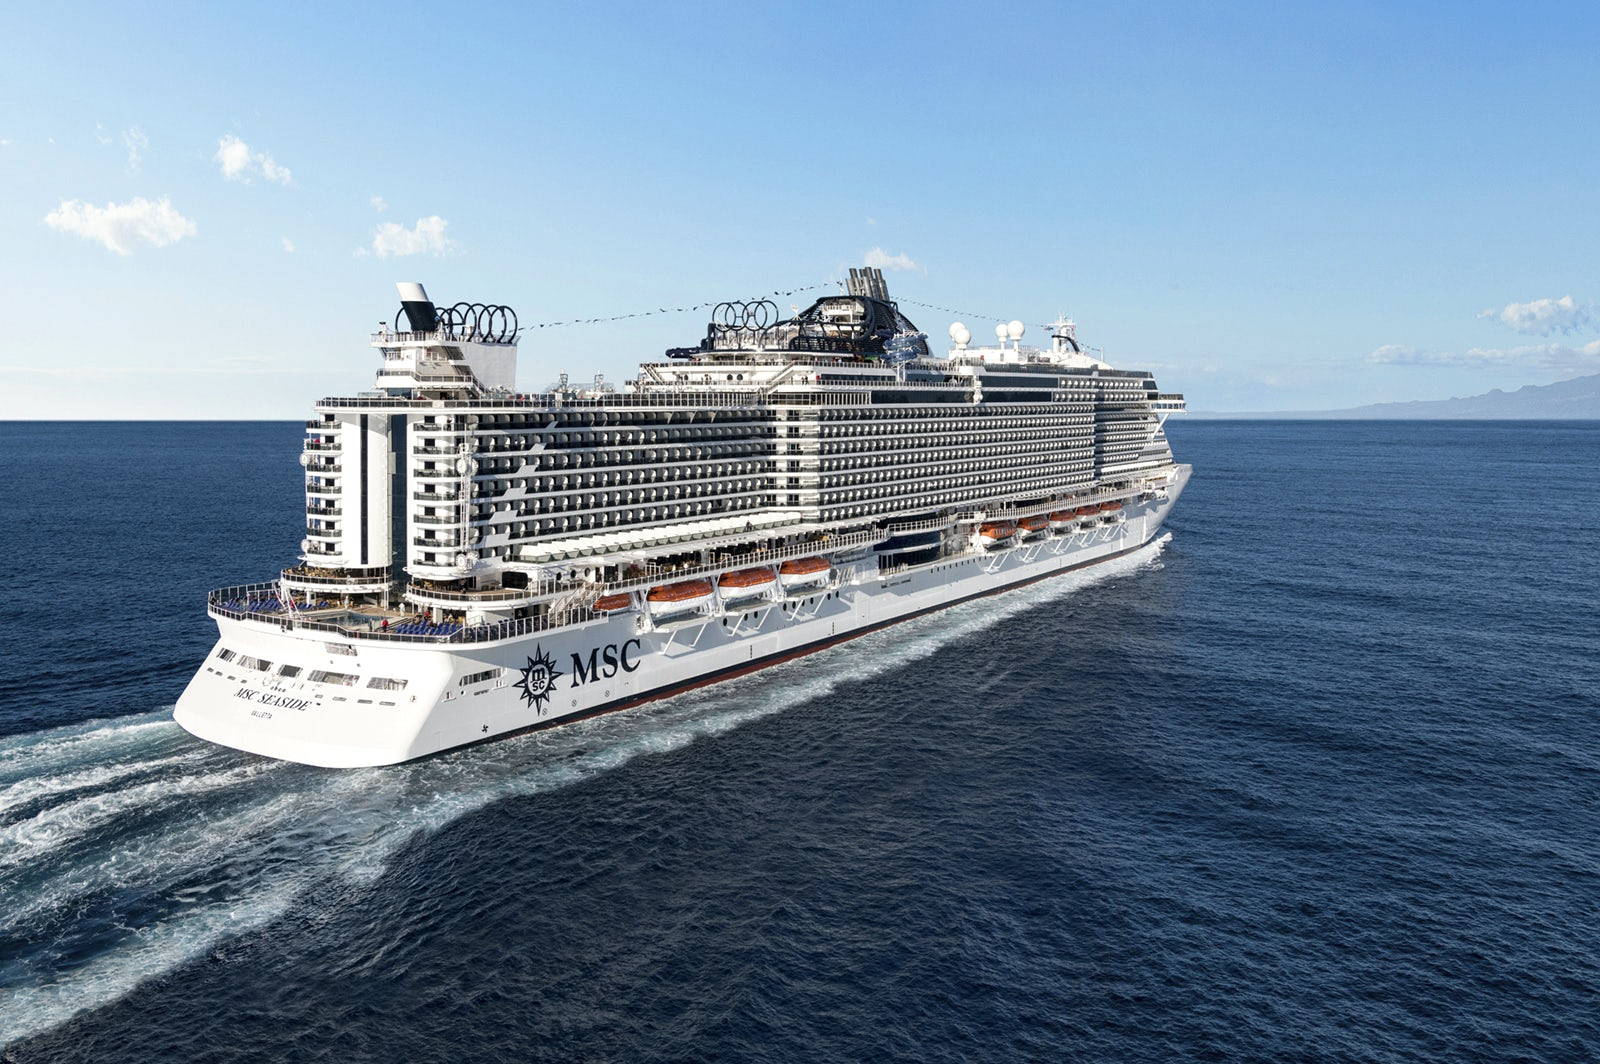 MSC Cruises - Unlimited Drinks and Free WiFi on Caribbean sailings!